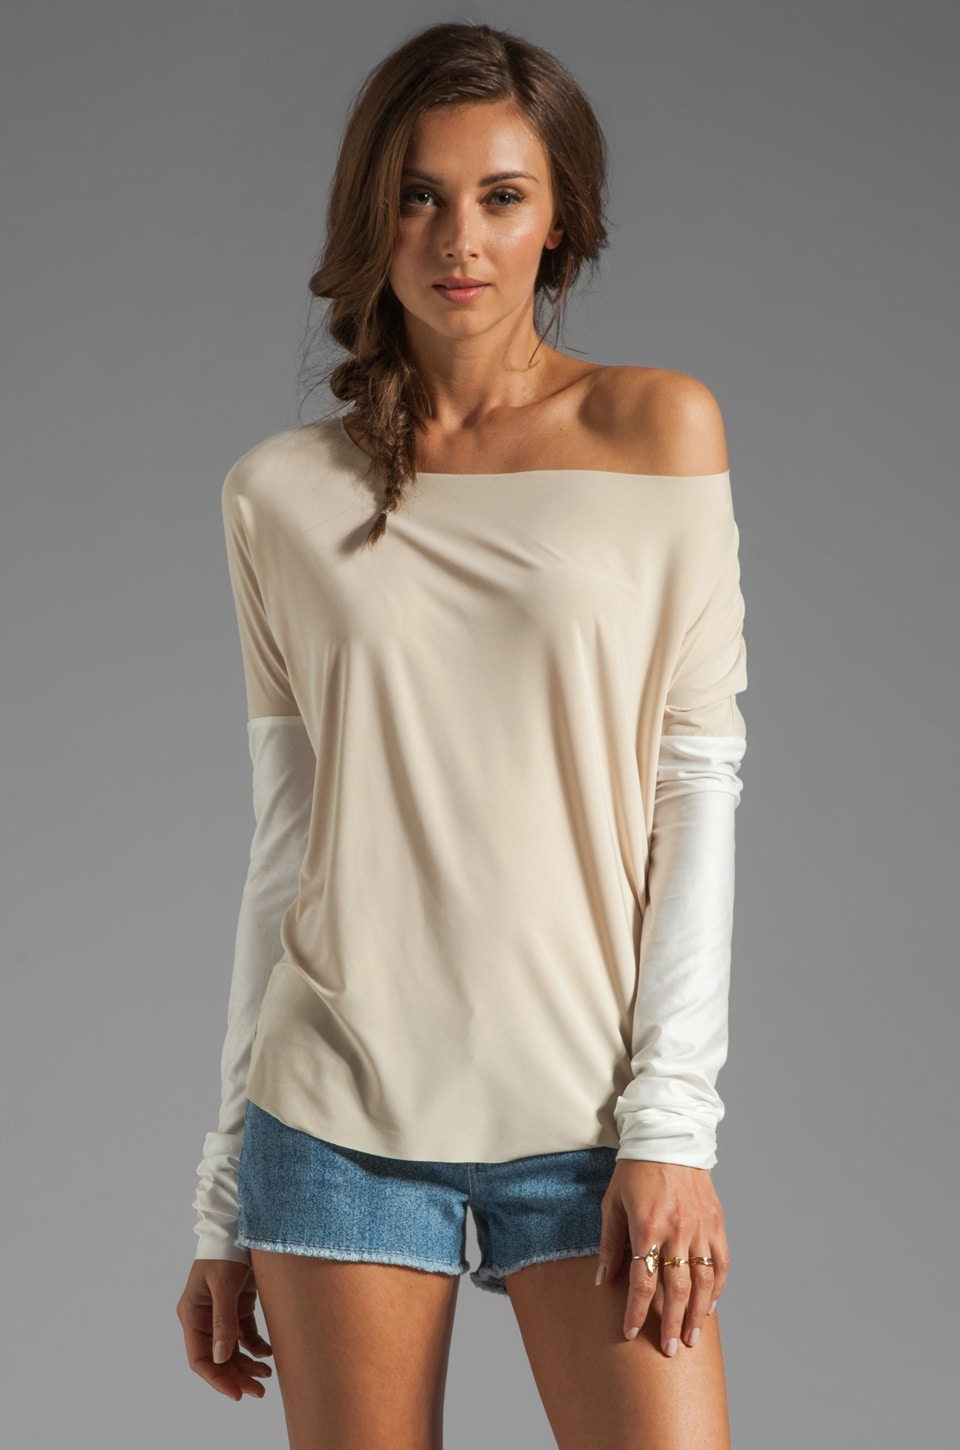 T-Bags LosAngeles Faux Leather Sleeve Top in Cream